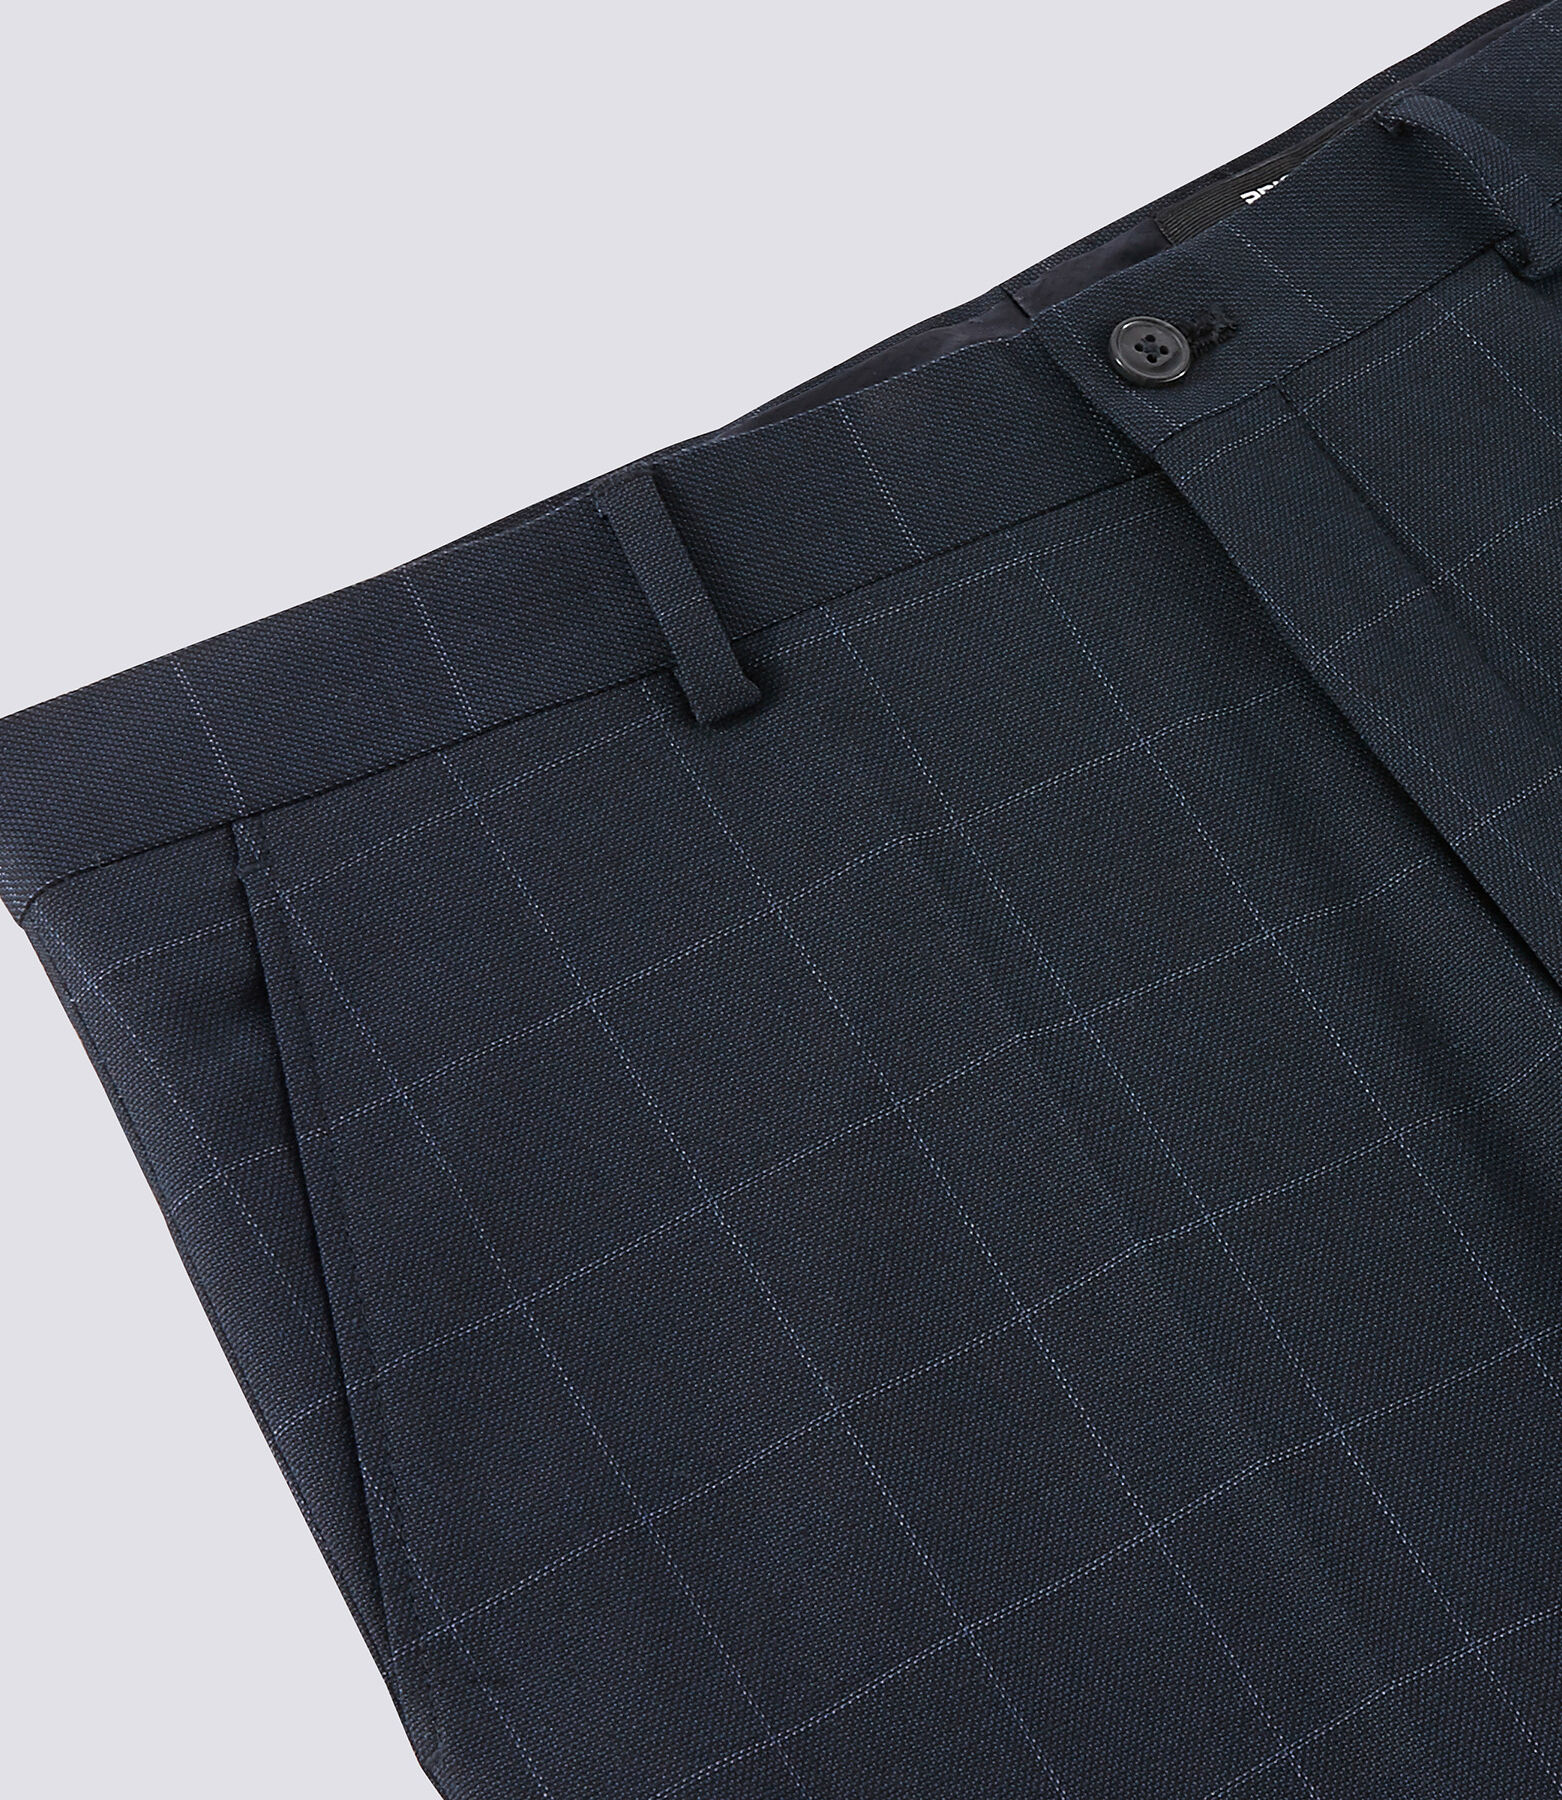 pantalon de costume slim motif carreau fenêtre